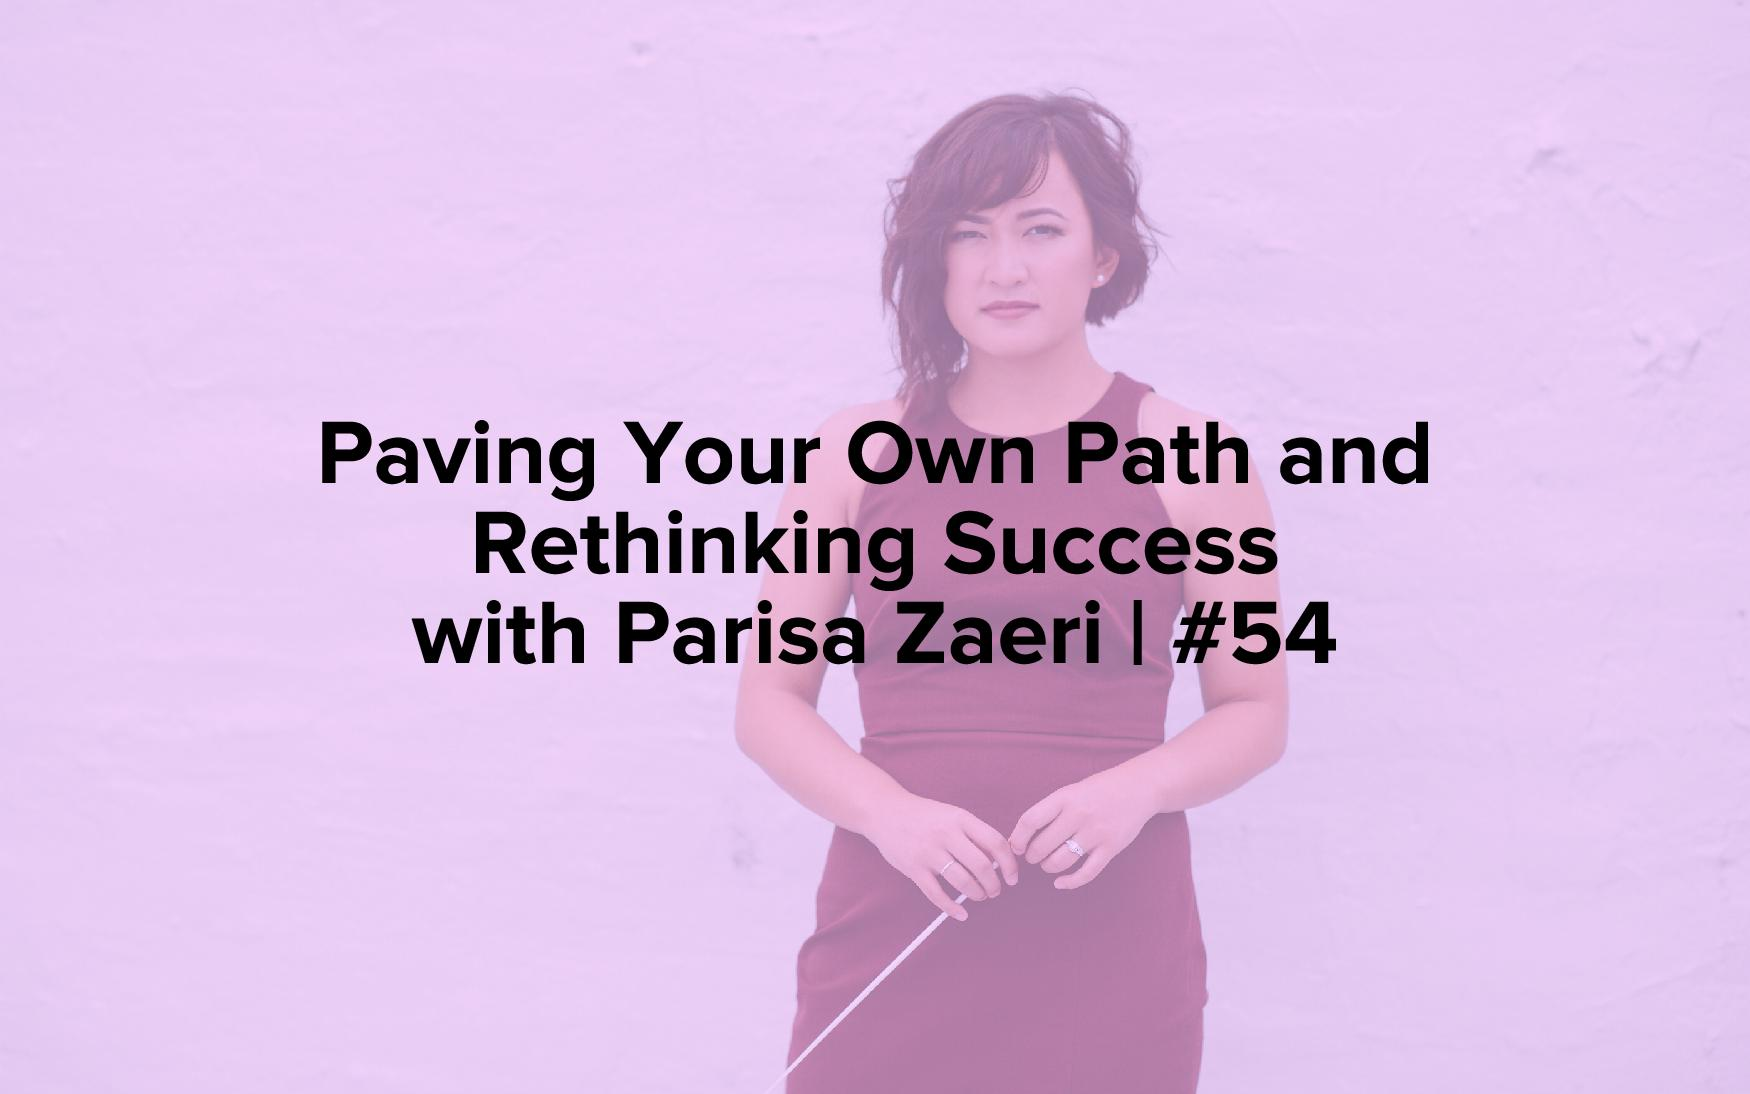 """Image text reads, """"Paving Your Own Path and Rethinking Success with Parisa Zaeri 